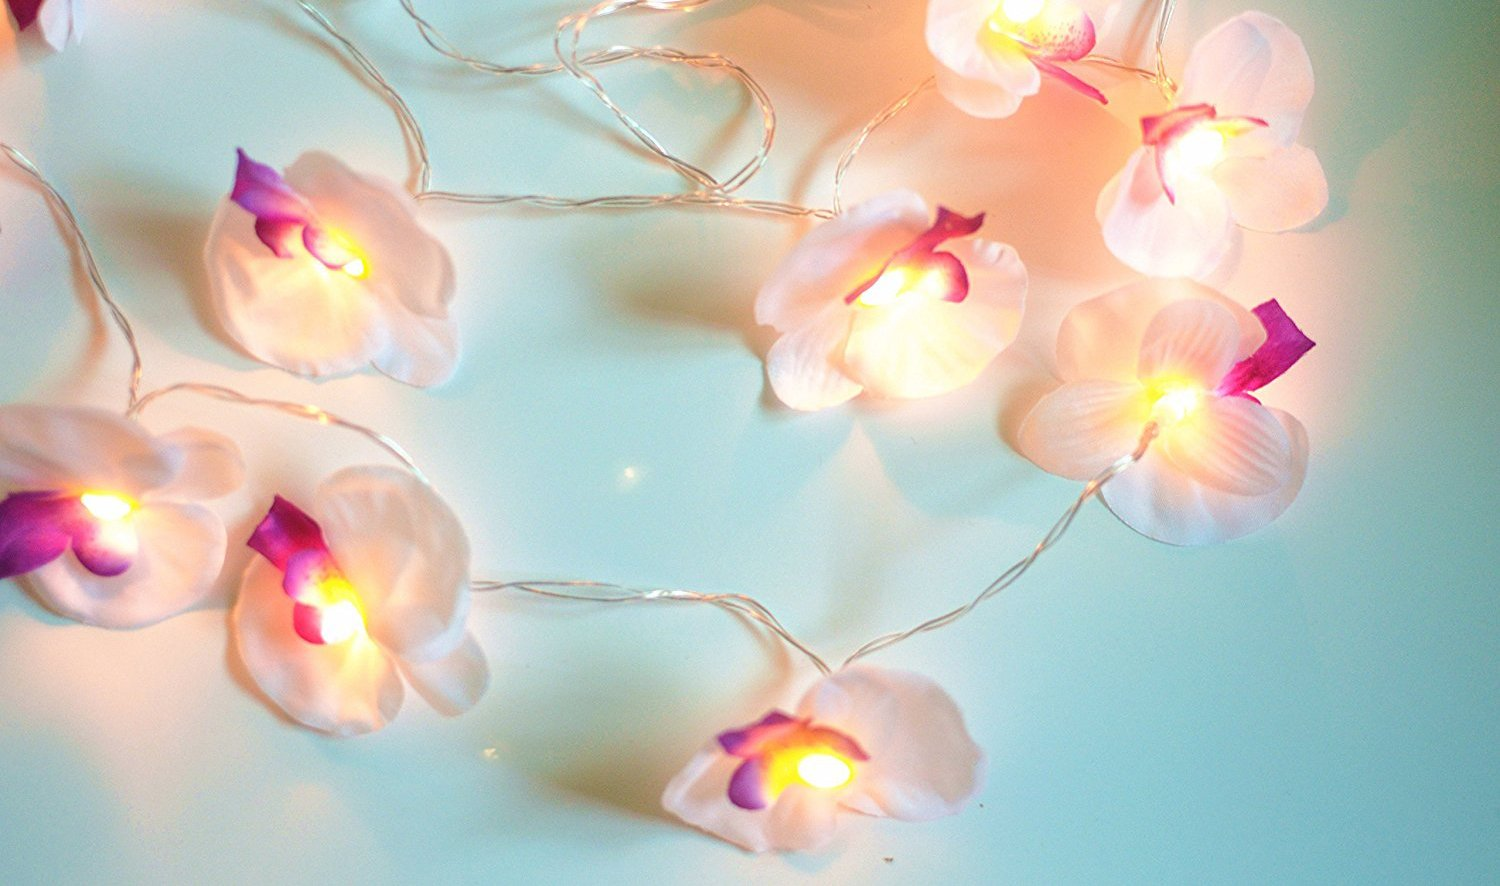 GaanZaLive36 Magical Garden Handmade 20 Romantic Hawaiian Plumeria Frangipani Natural silk Flower Fairy String Lights Patio Wedding Party Vanity Kid Wall Lamp Floral Home Decor 3m (Orchid, White) by GaanZaLive36